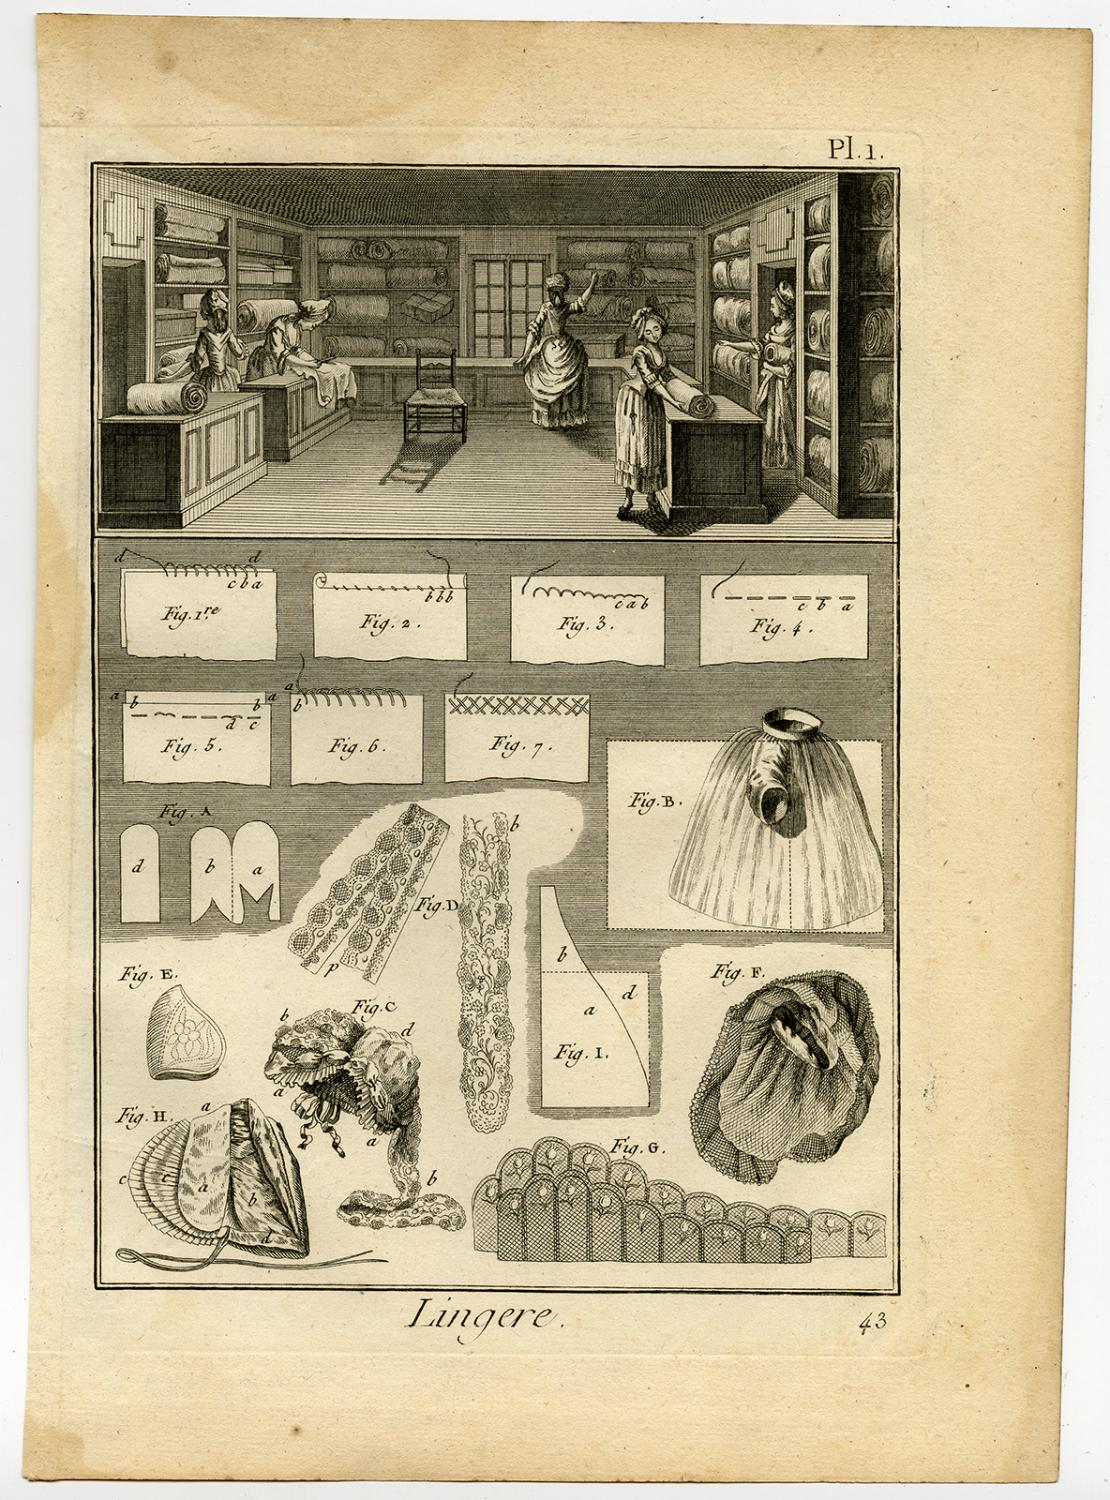 2 Antique Prints-LINGERE-LINGERIE-UNDERCLOTHES-NIGHT DRESS-Diderot-Benard-1779 2 Antique prints, titled: 'Lingere.' - Plate 1-2: 'Lingere'. This plate shows a lingerie shop and fabric patterns for lingerie: underclothes and night